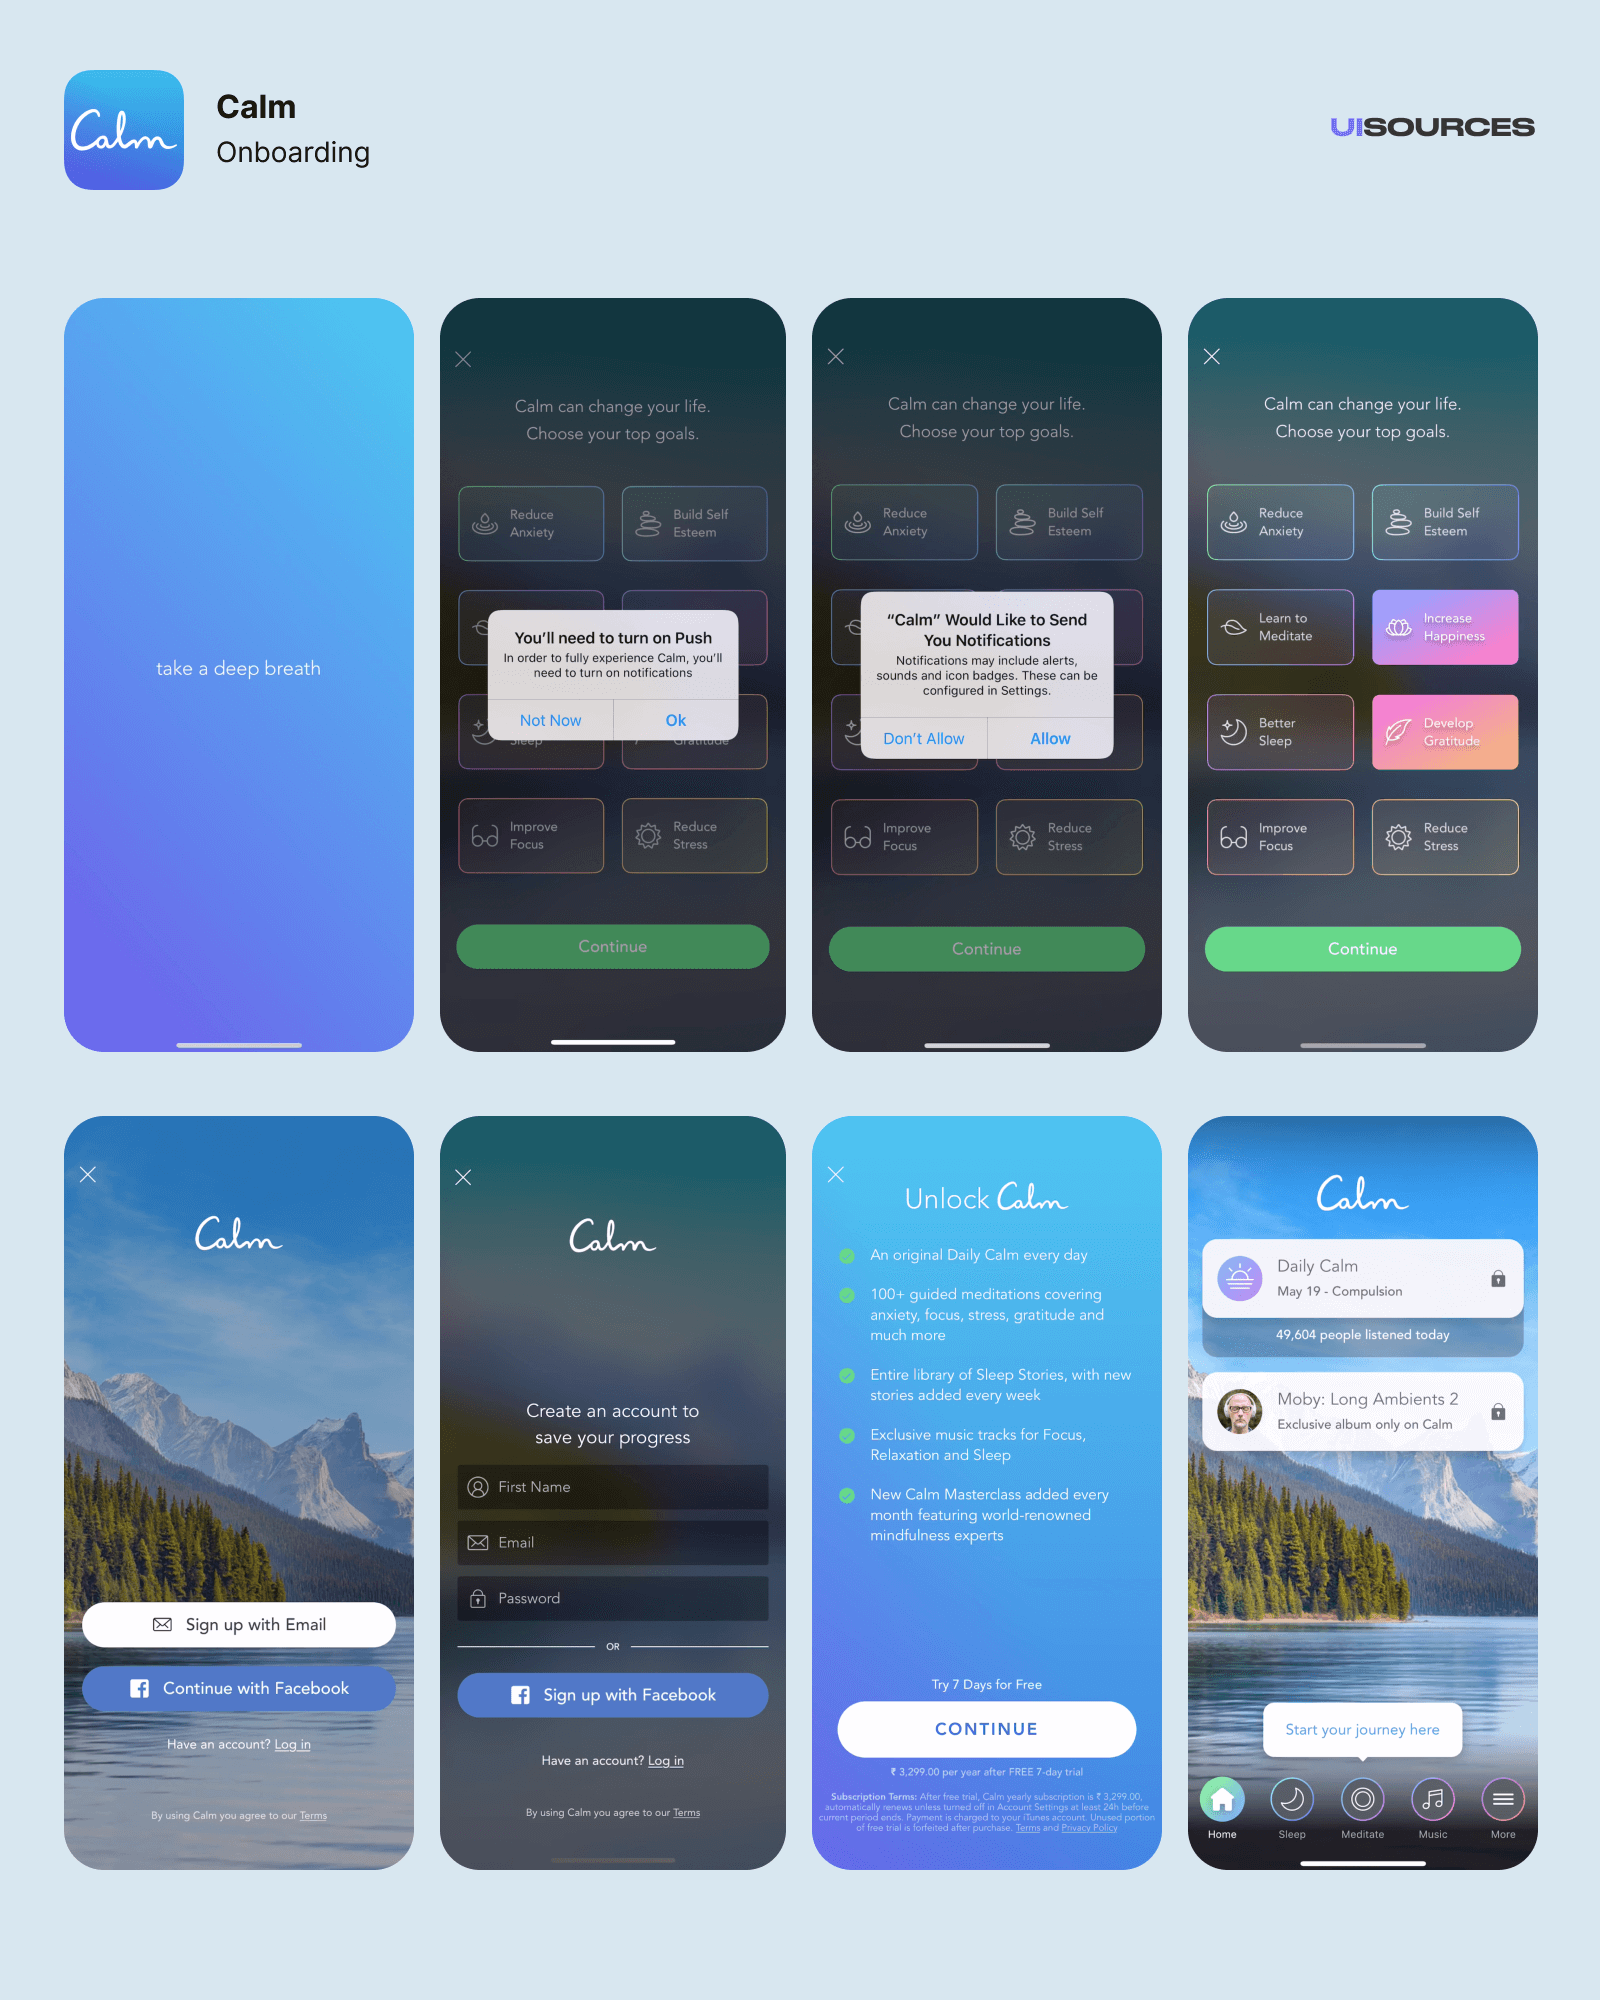 Calm - Onboarding | UI Sources